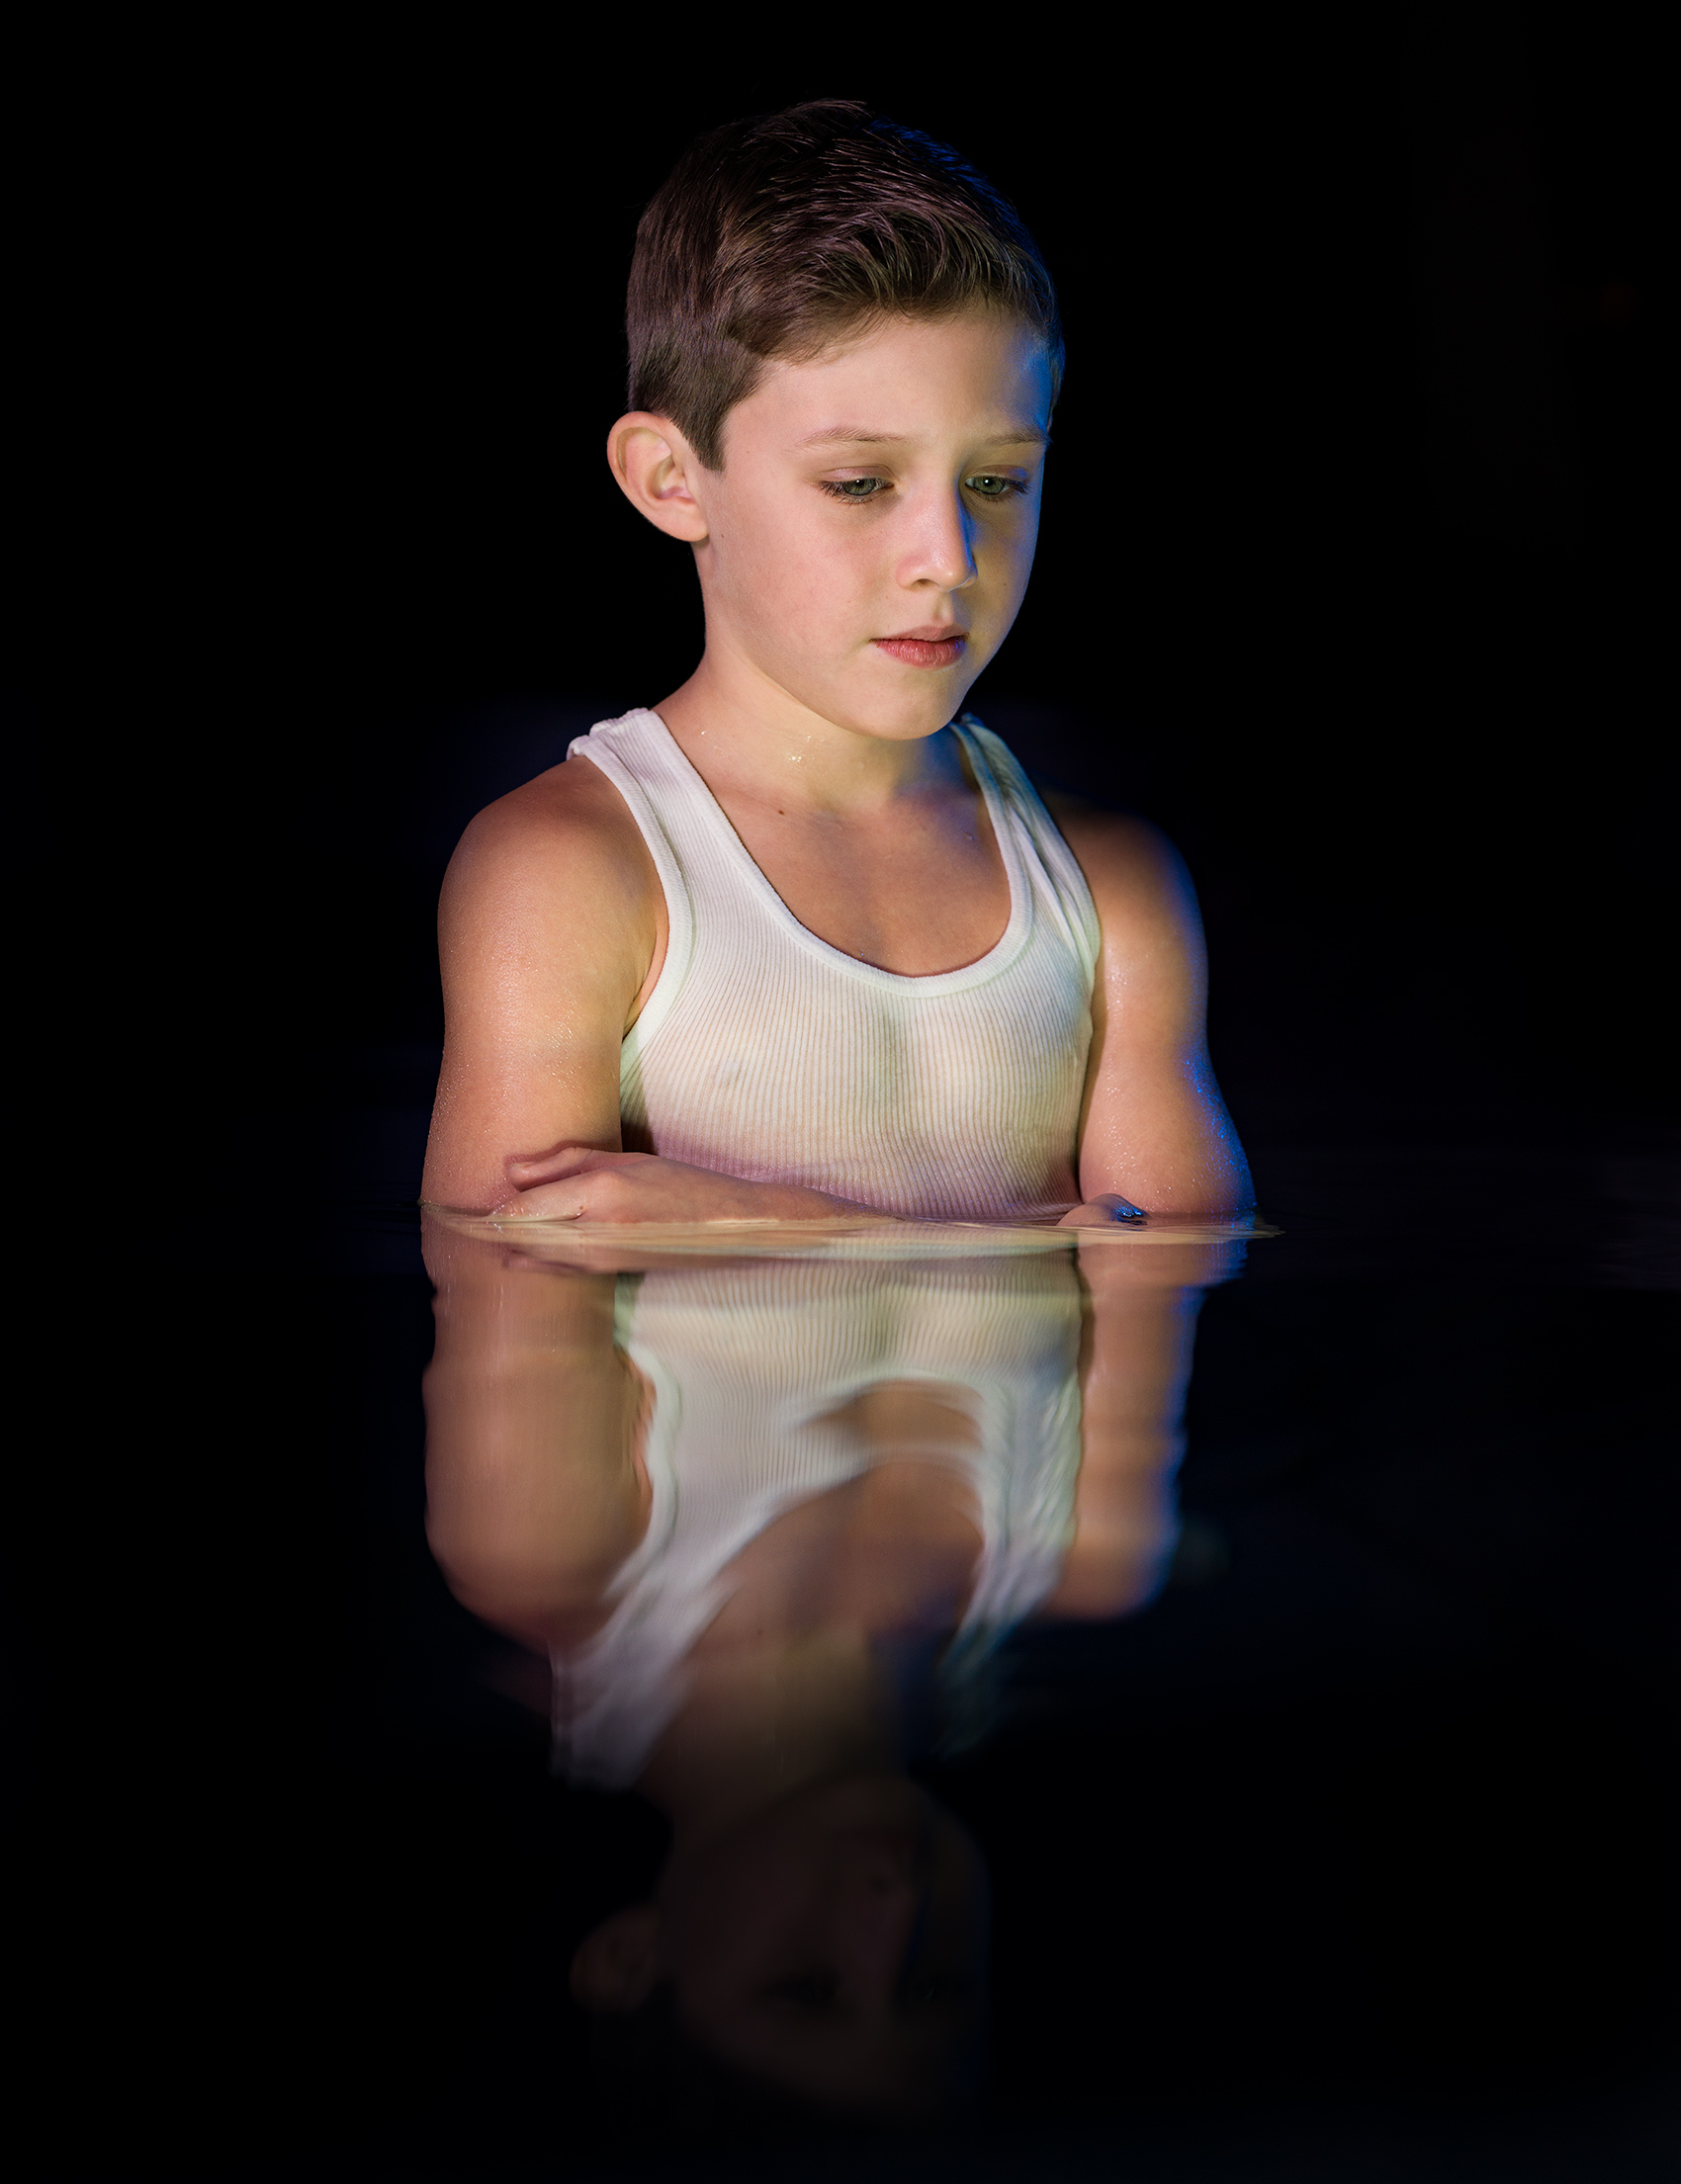 reflection of a half way submerged young man